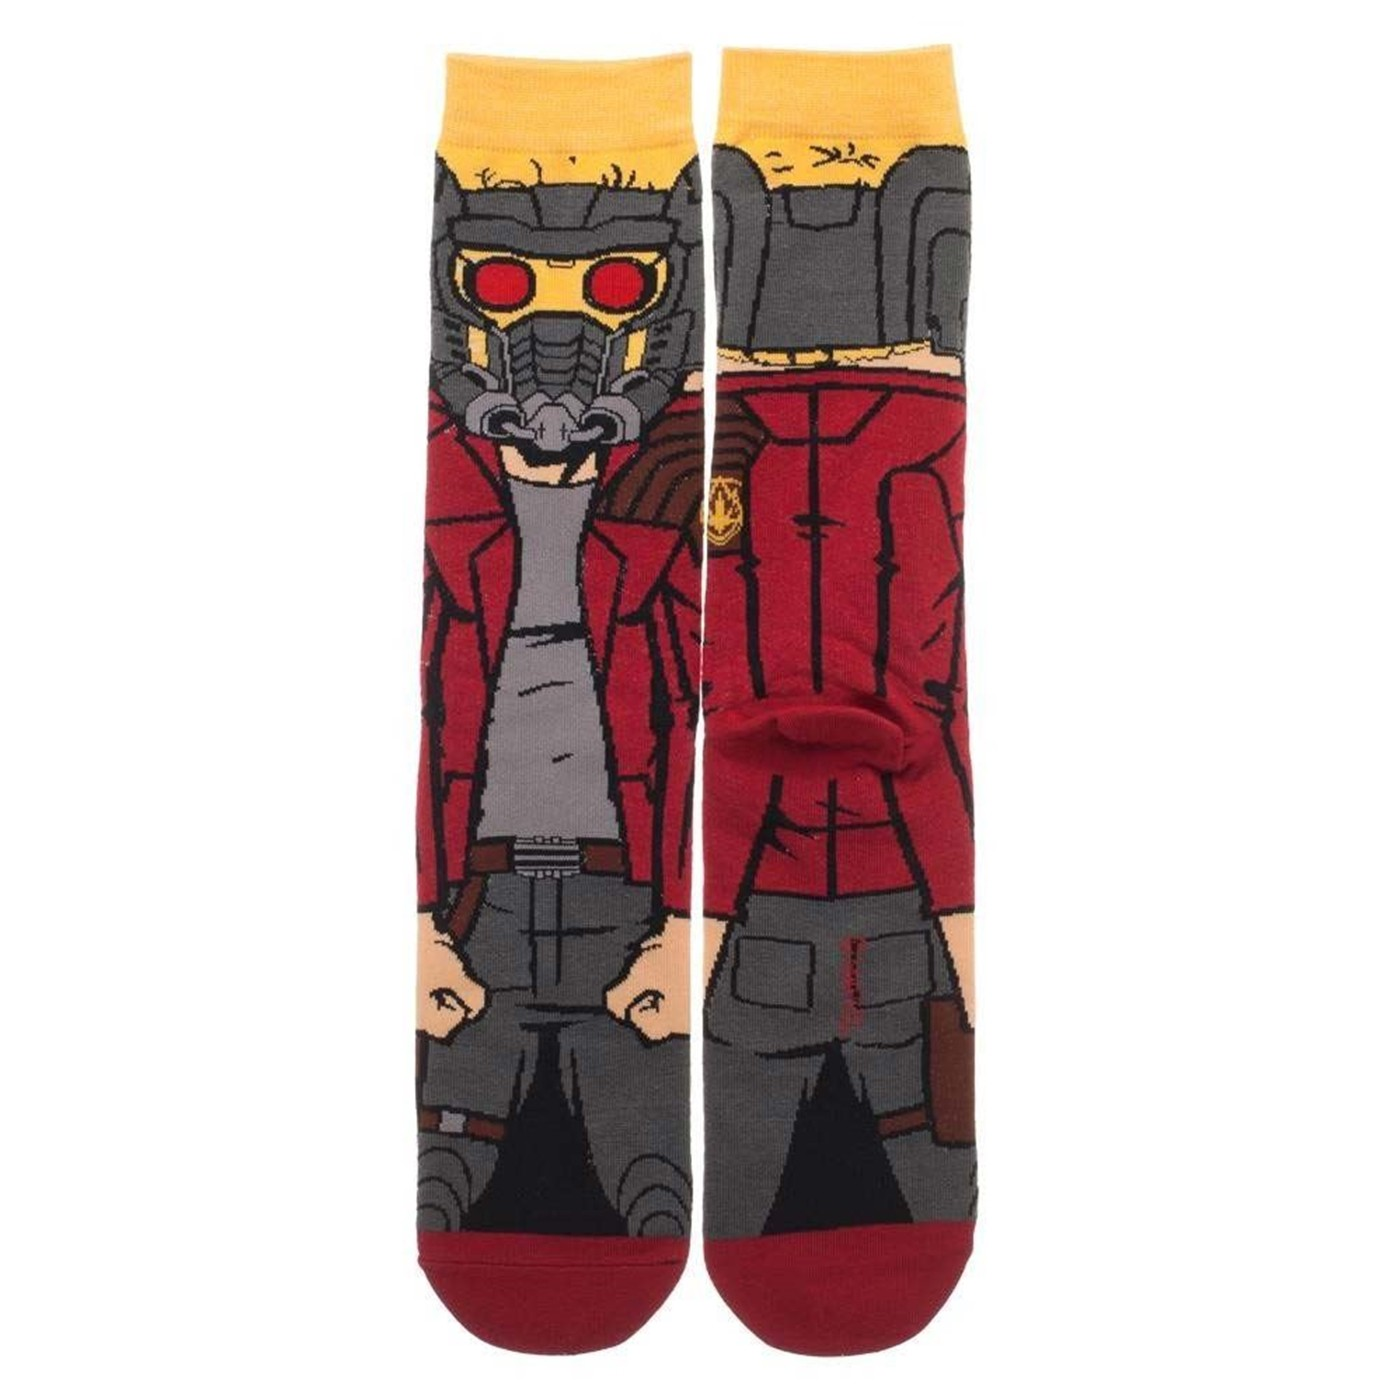 Guardians of the Galaxy Starlord Character Crew Sock